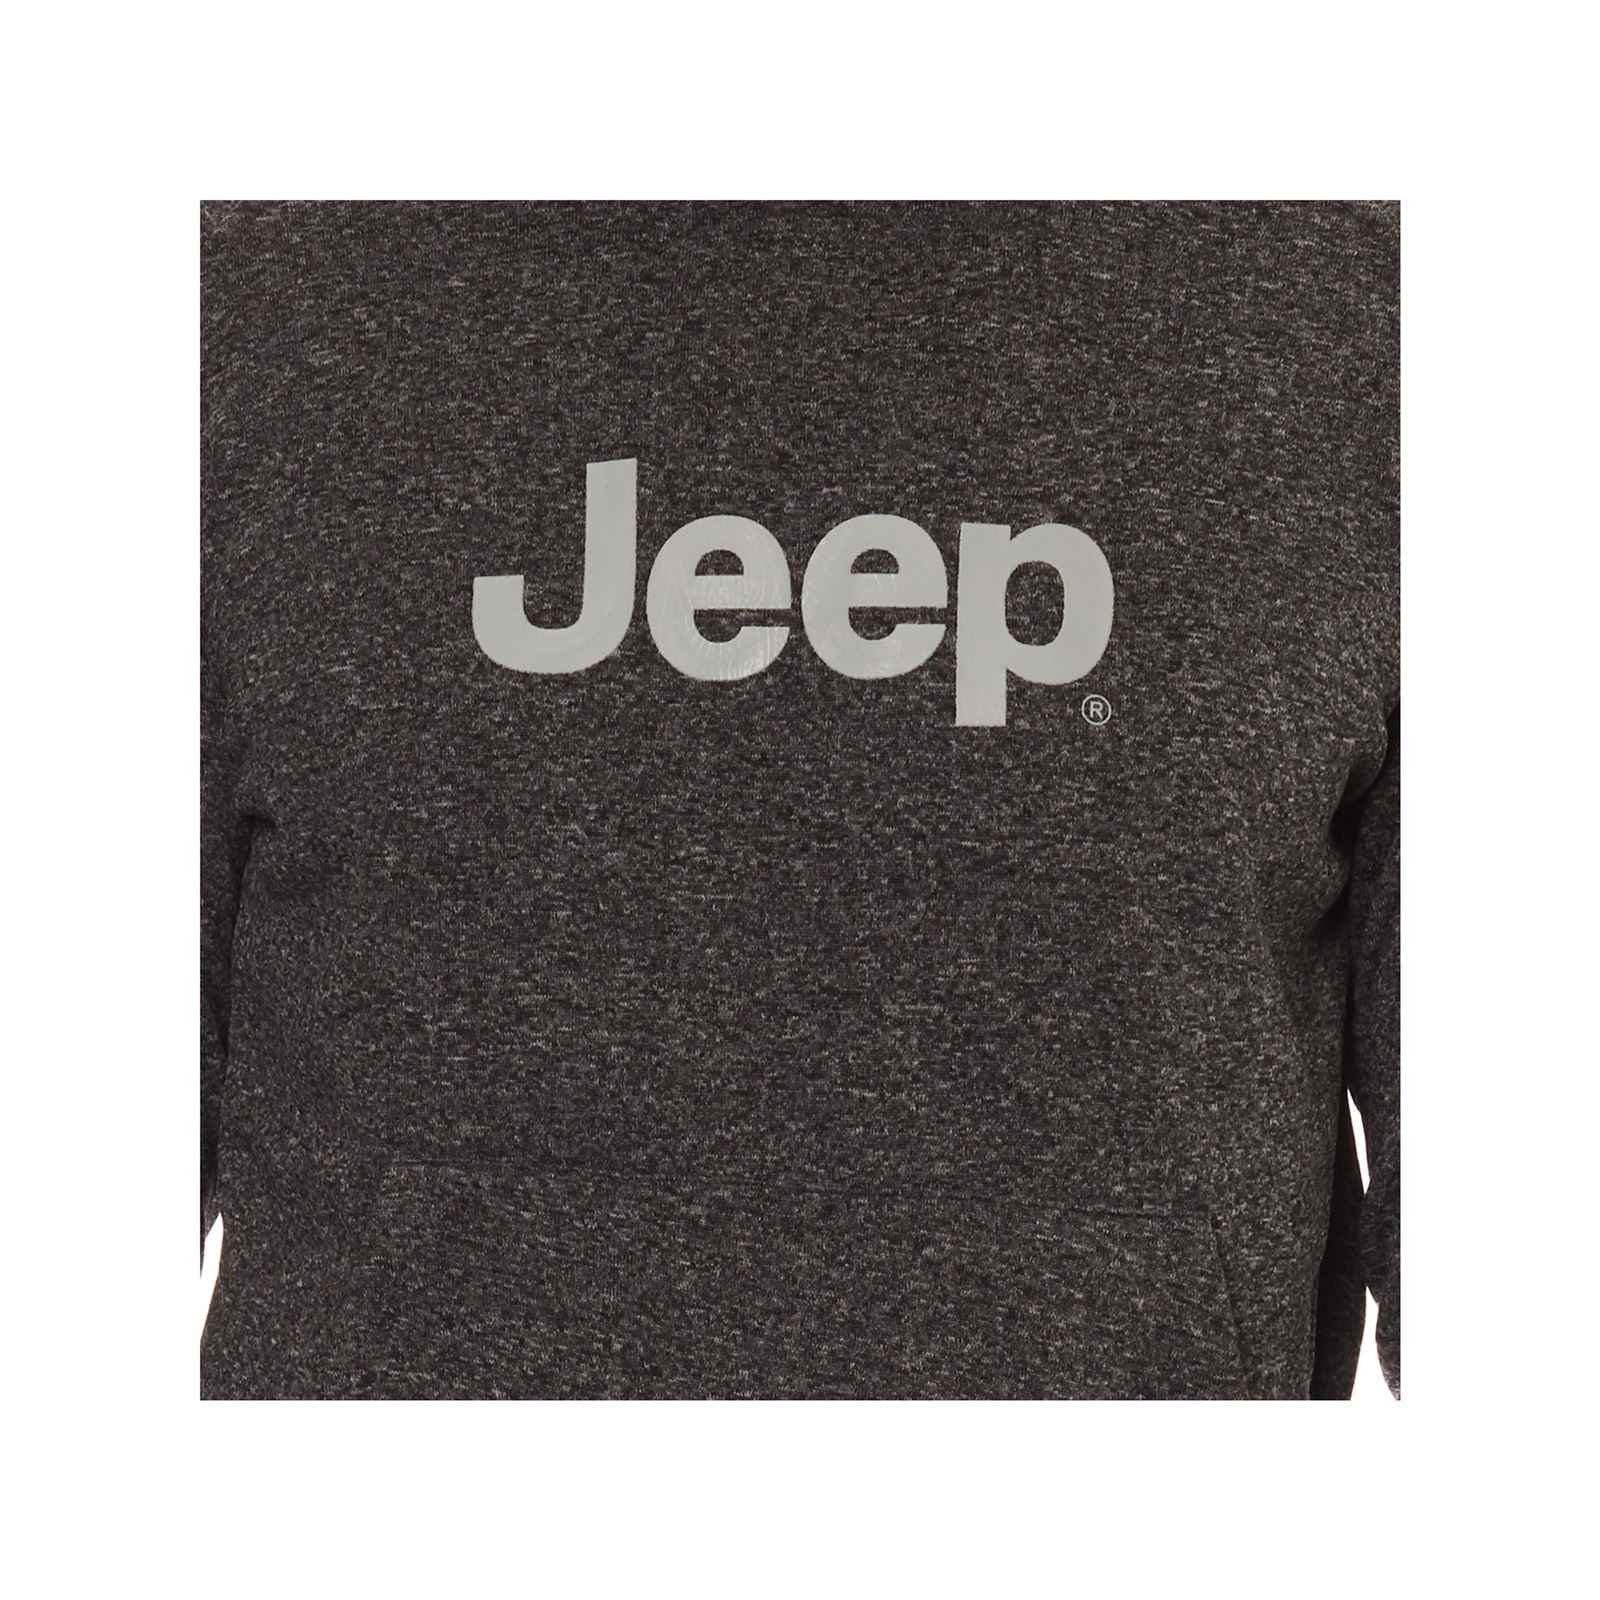 Sweat Jeep Jeep Sweat Jeep Jeep Sweat Sweat Sweat Jeep byf7g6